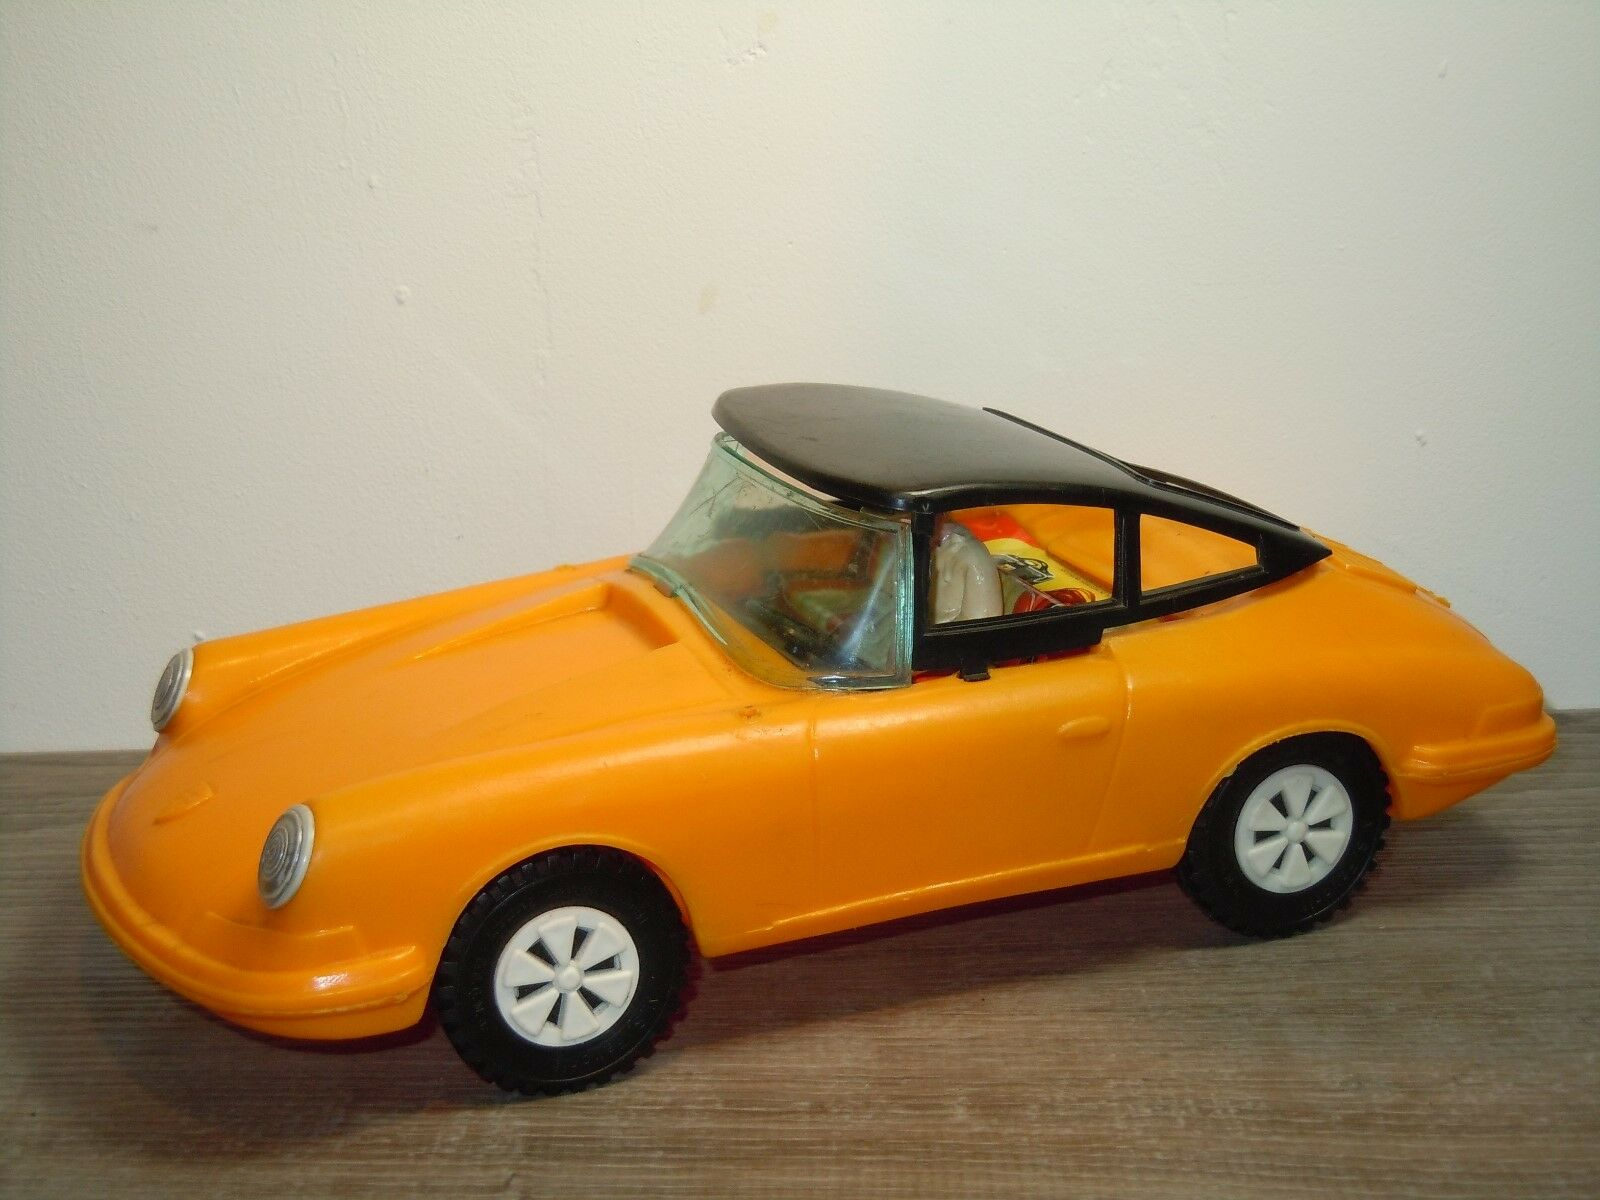 Porsche 911 Congreenible with Roof - Rare Plastic Model Germany 33474